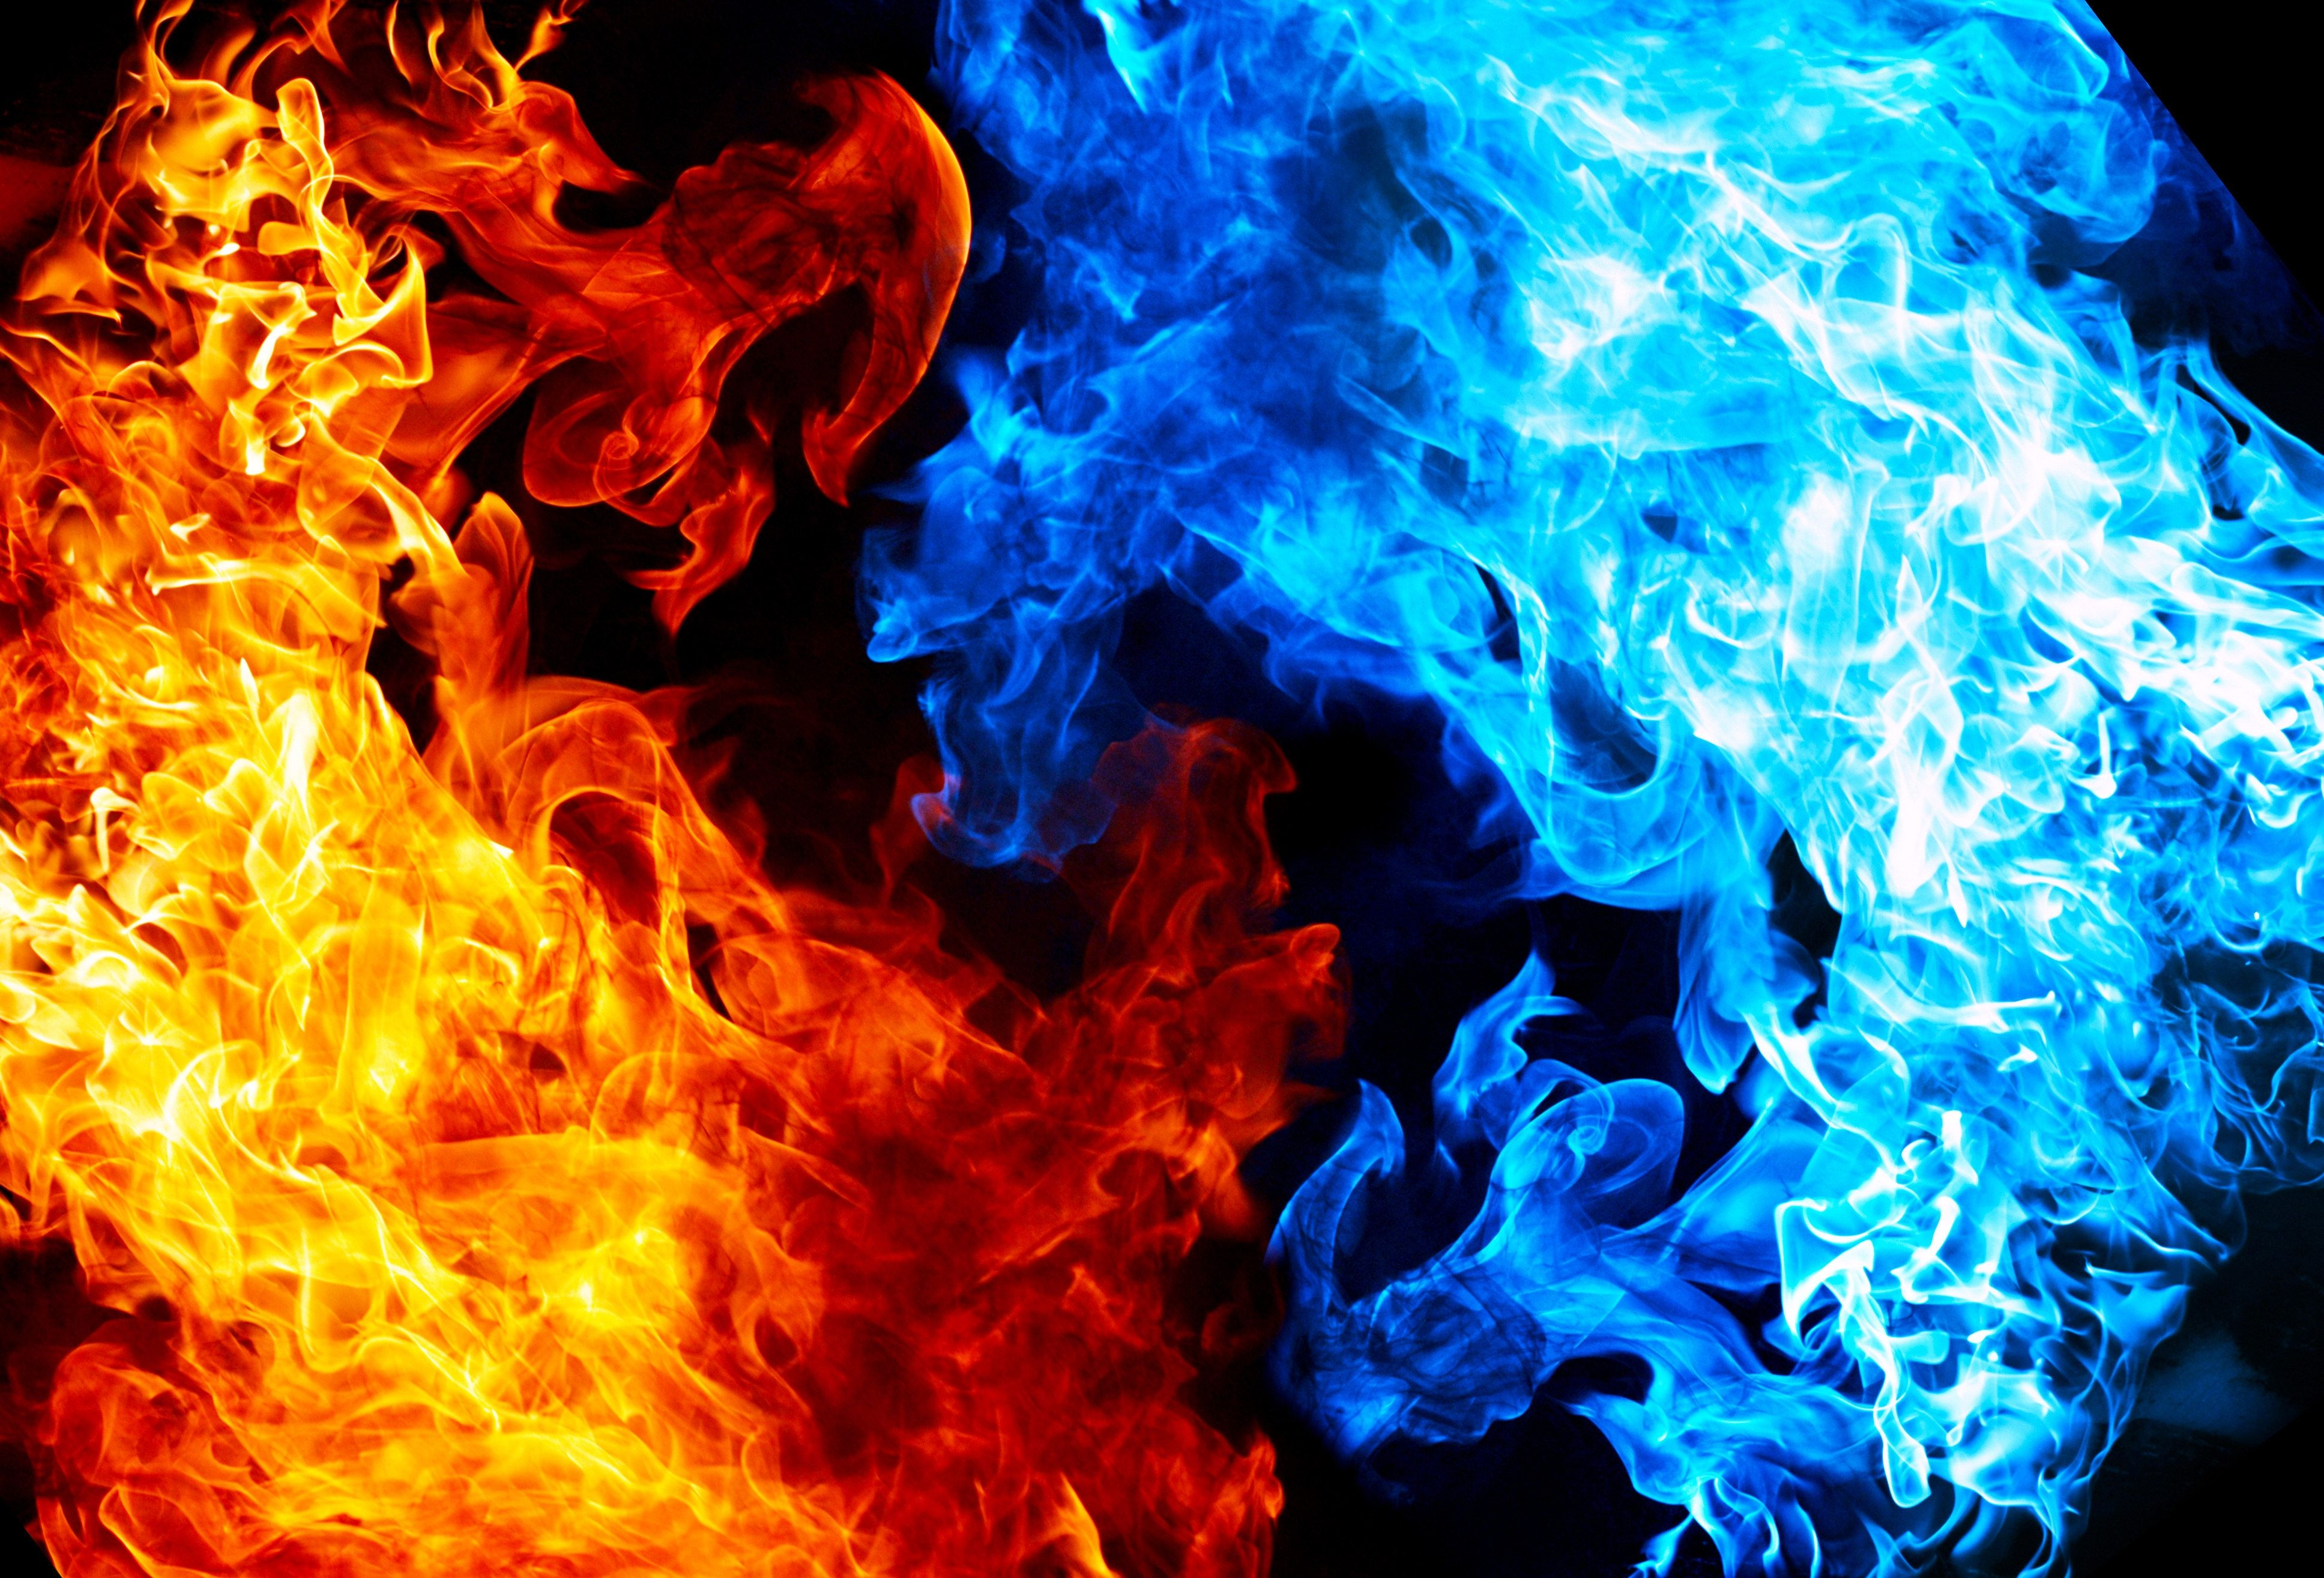 3871x2628 Flames Wallpapers and Background Images - stmed.net